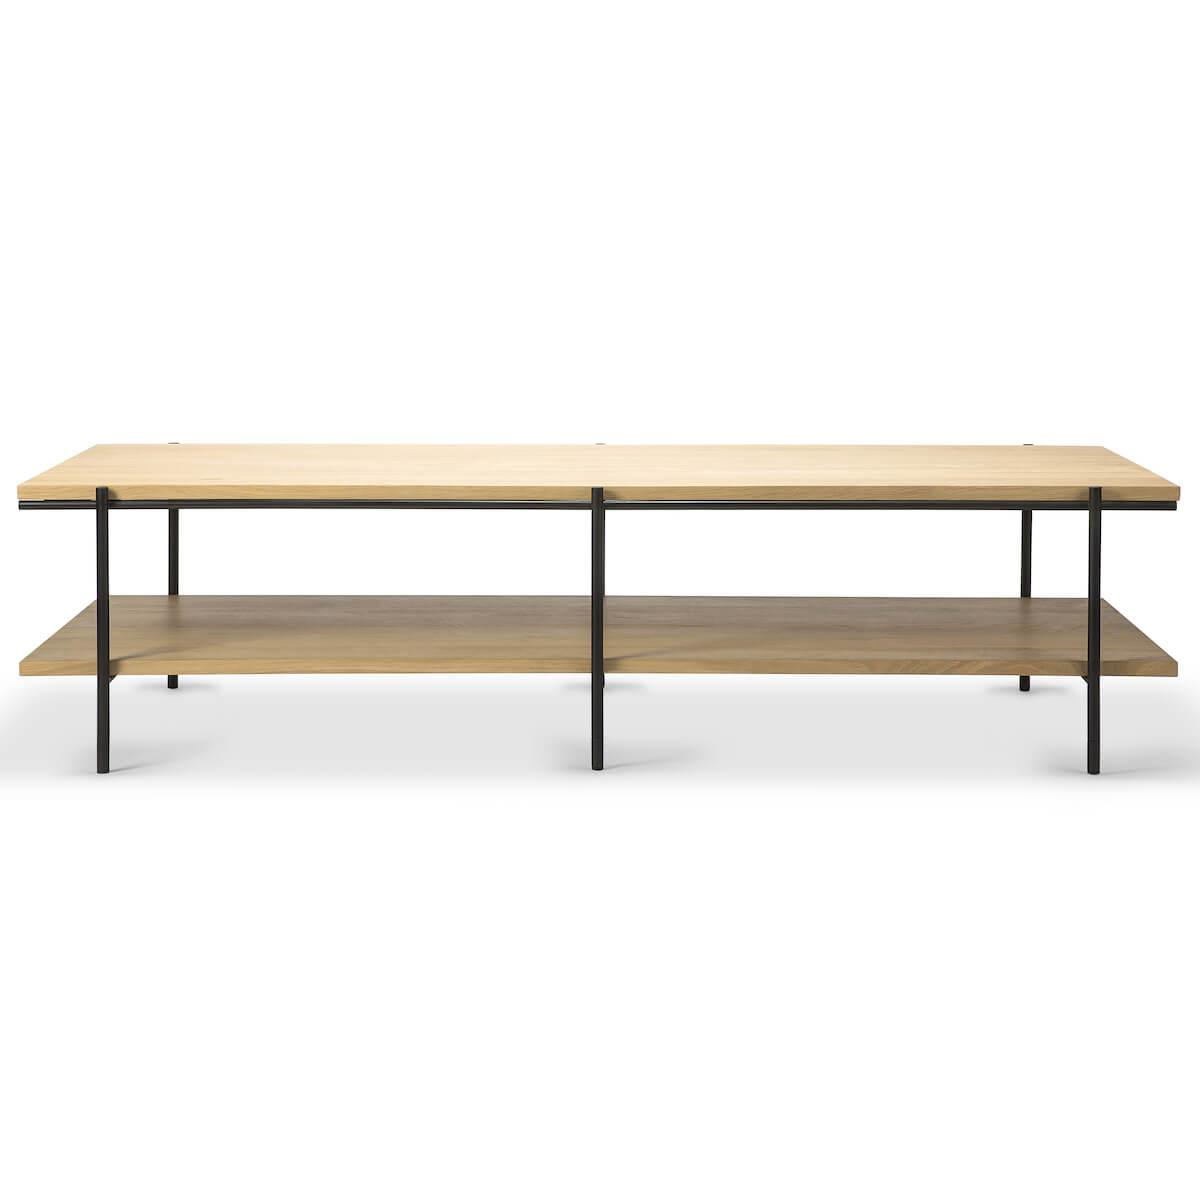 Table basse 70x120cm RISE Ethnicraft chêne